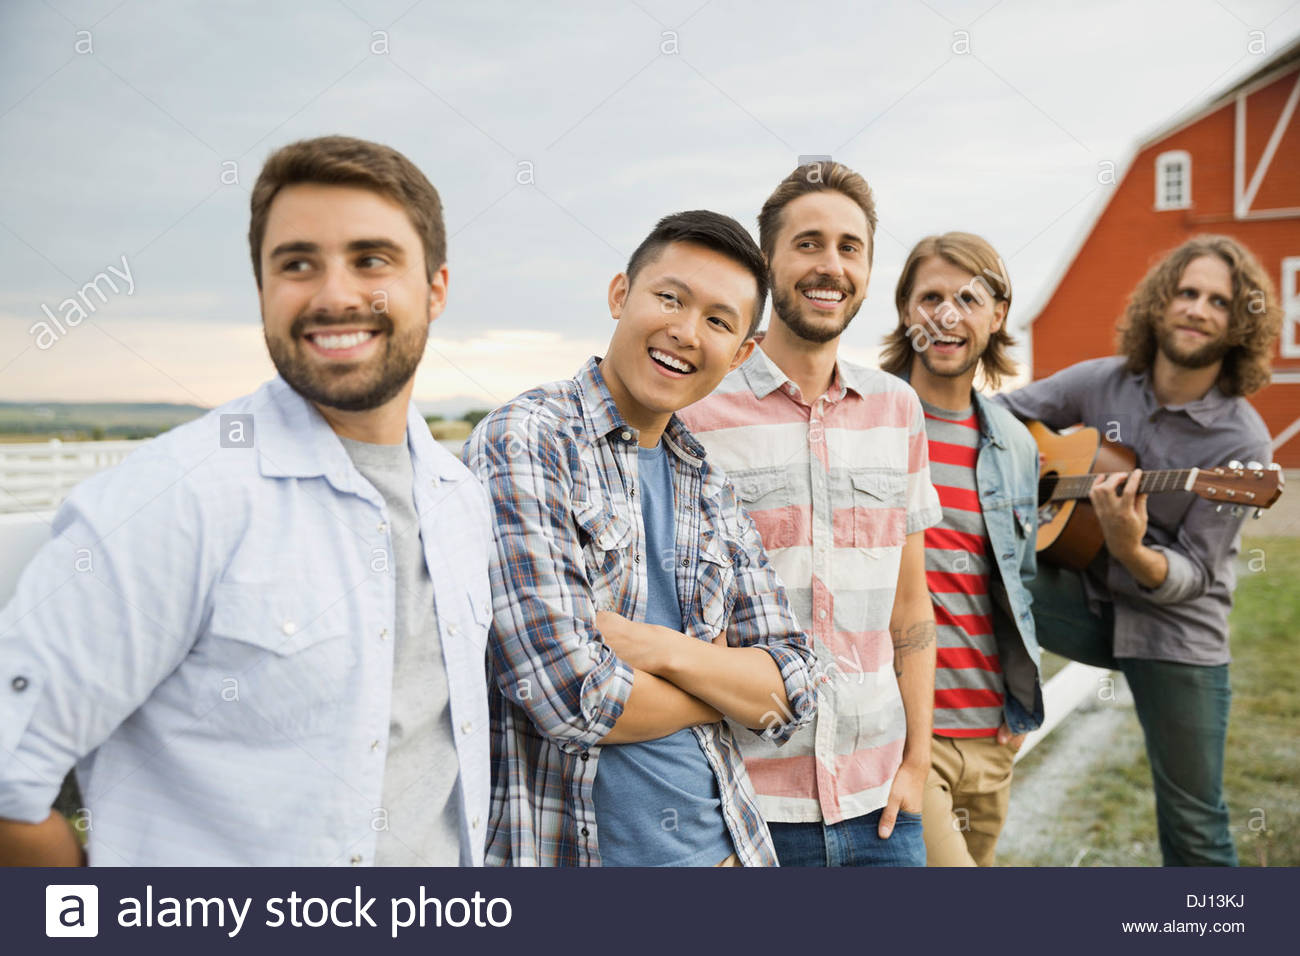 Group of male friends hanging out on a farm - Stock Image